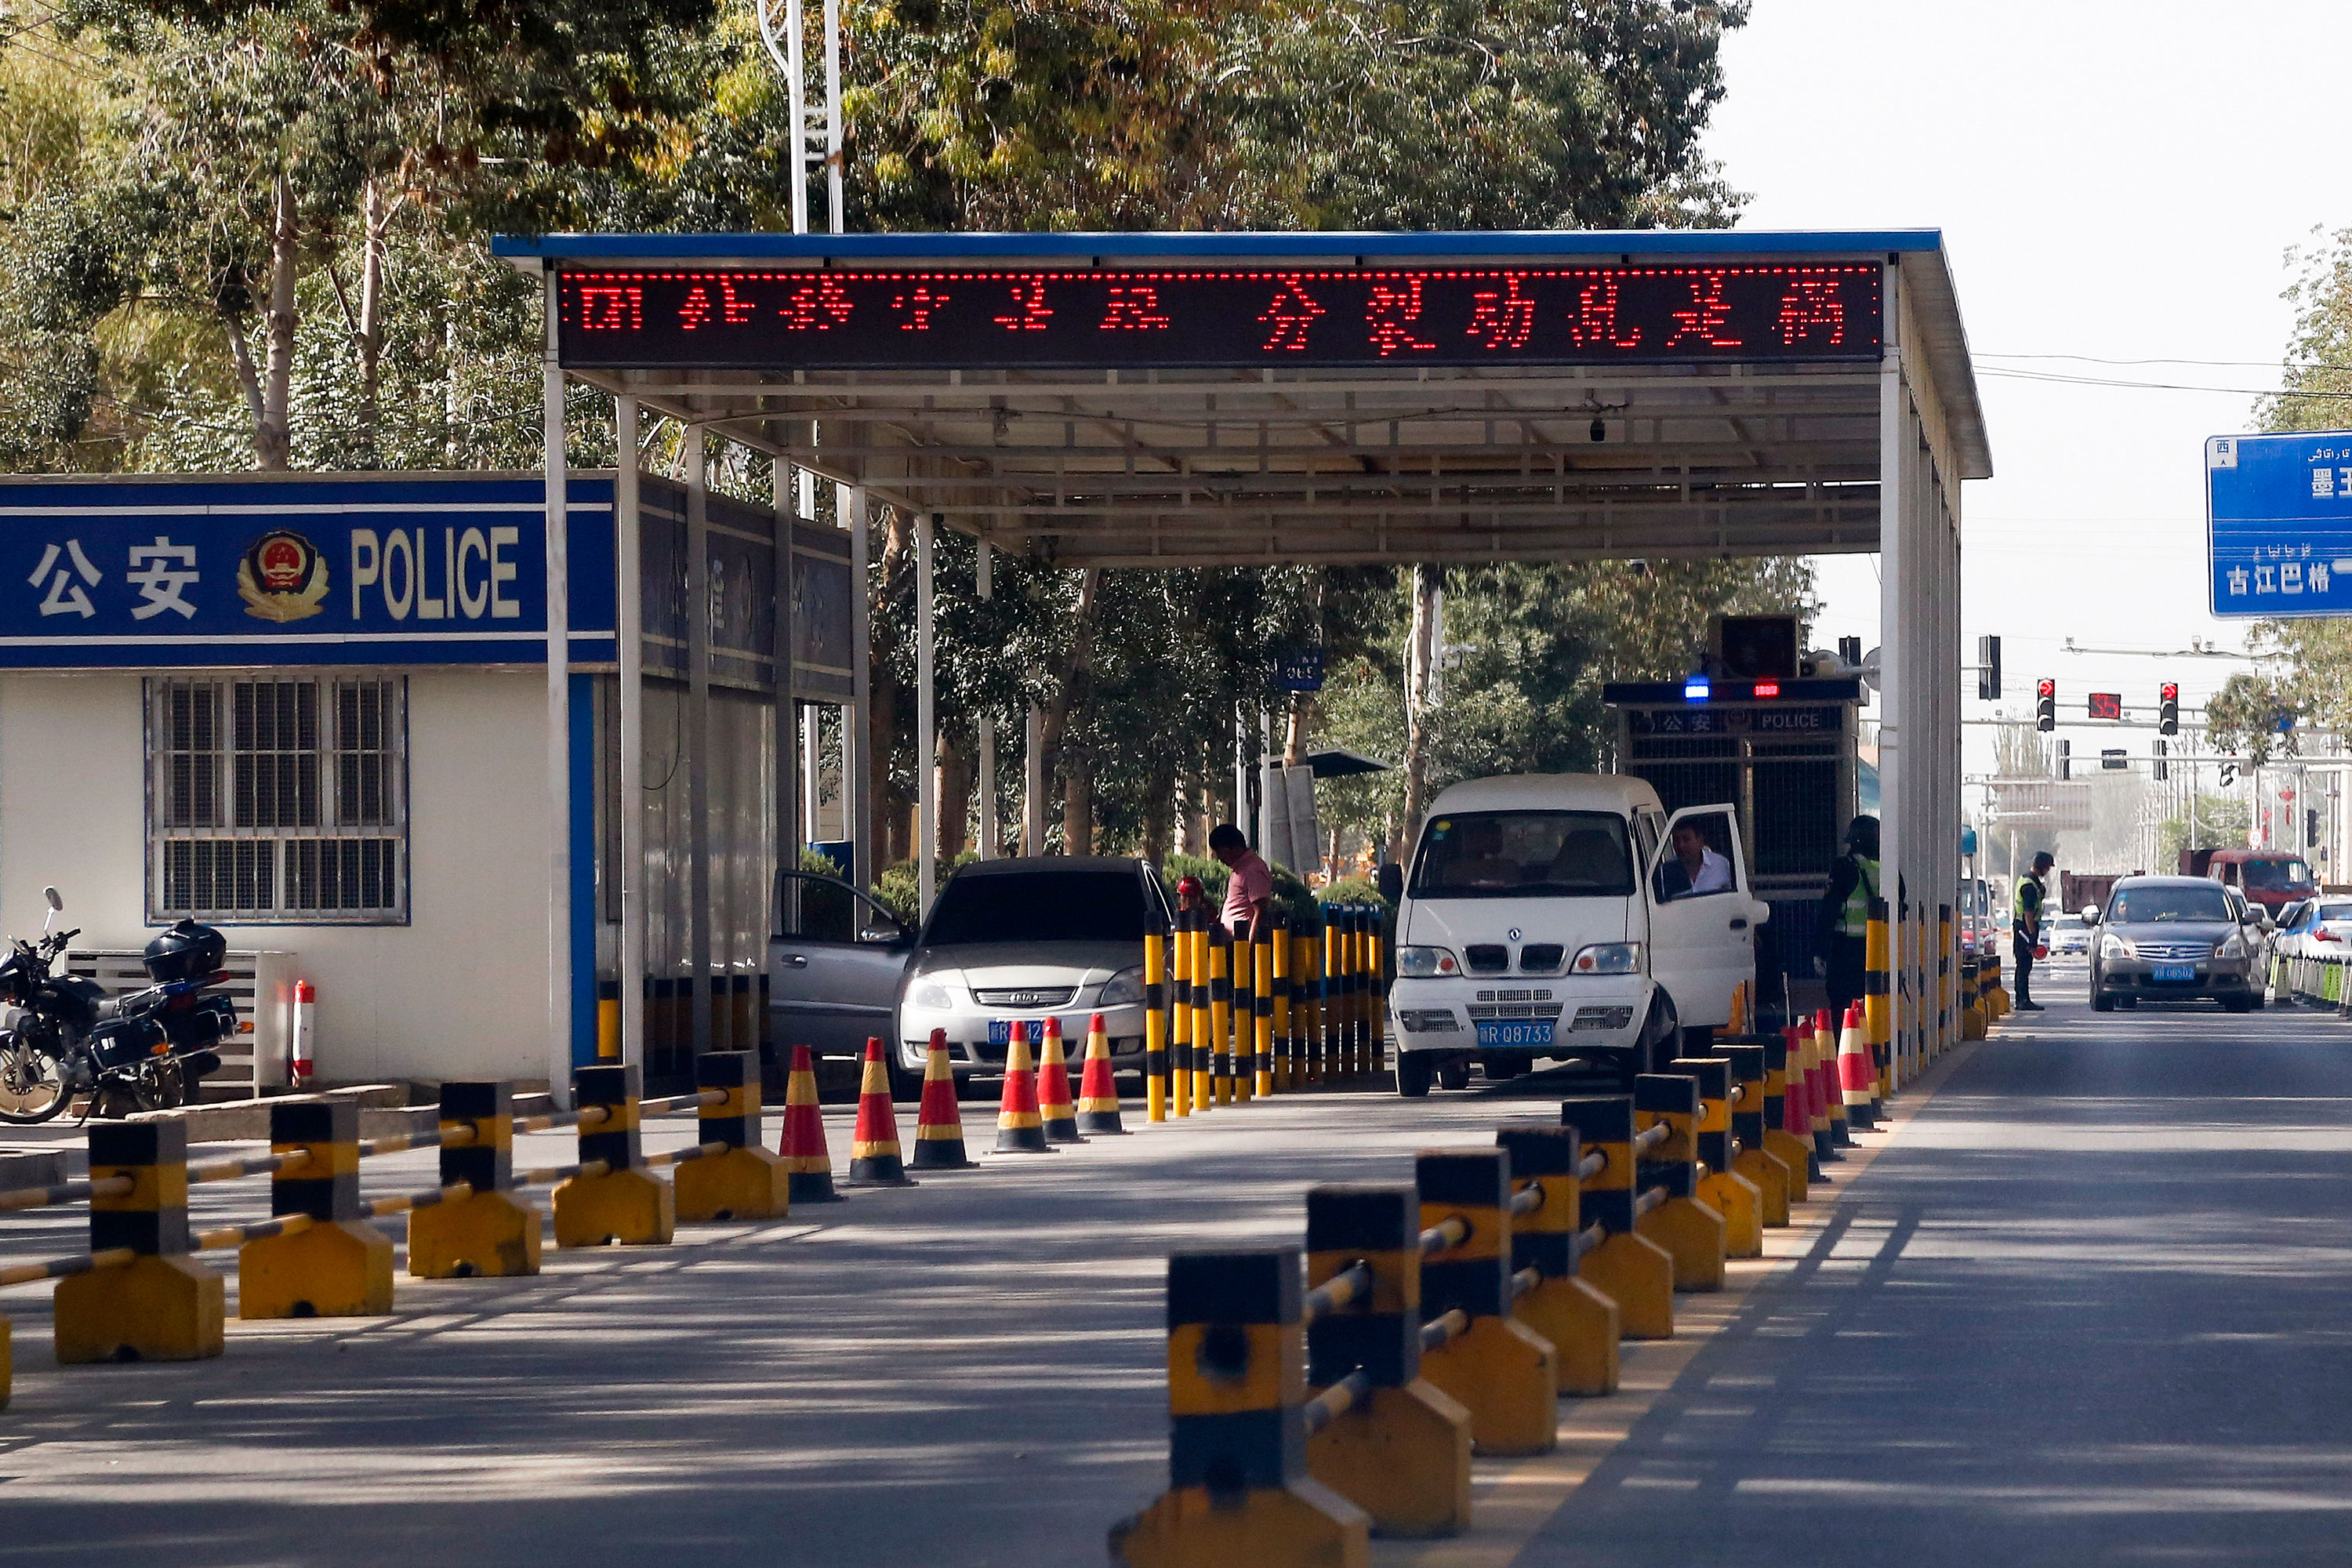 Chinese border guards are putting a surveillance app on tourists' phones